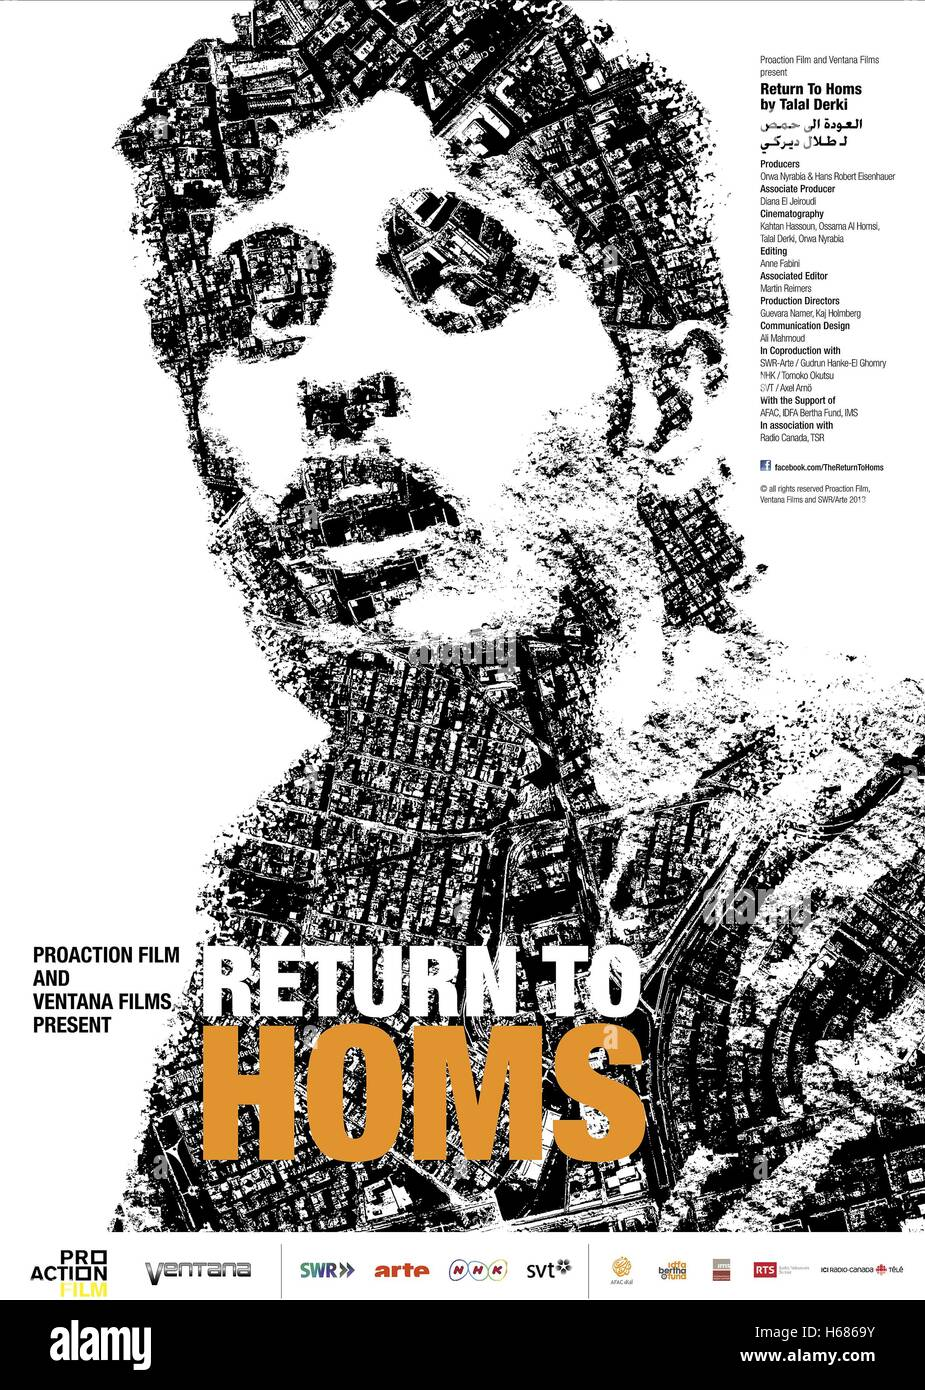 MOVIE POSTER THE RETURN TO HOMS (2013) - Stock Image